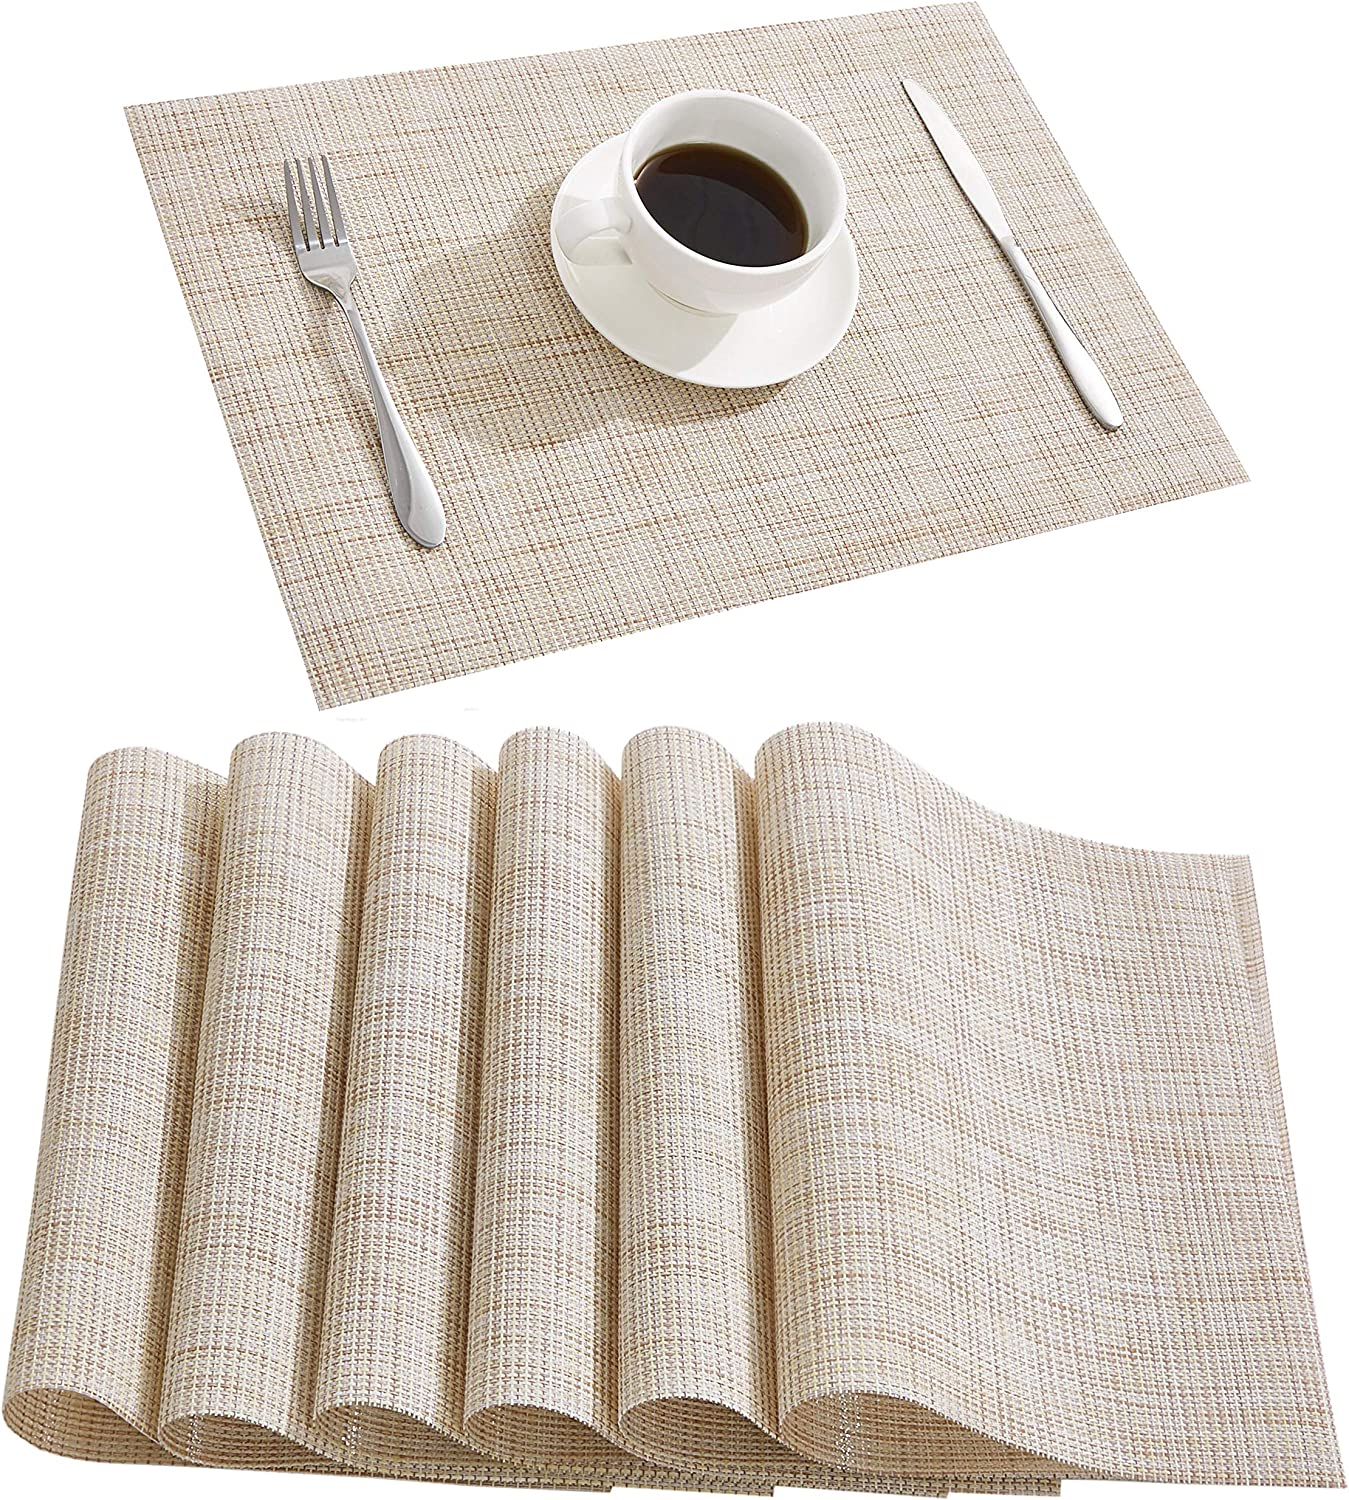 DOLOPL Placemats Placemat Waterproof Placemats Set of 6 Table Mats Heat Resistant Non Slip Wipeable Placemat for Kitchen Dining Restaurant (Beige)